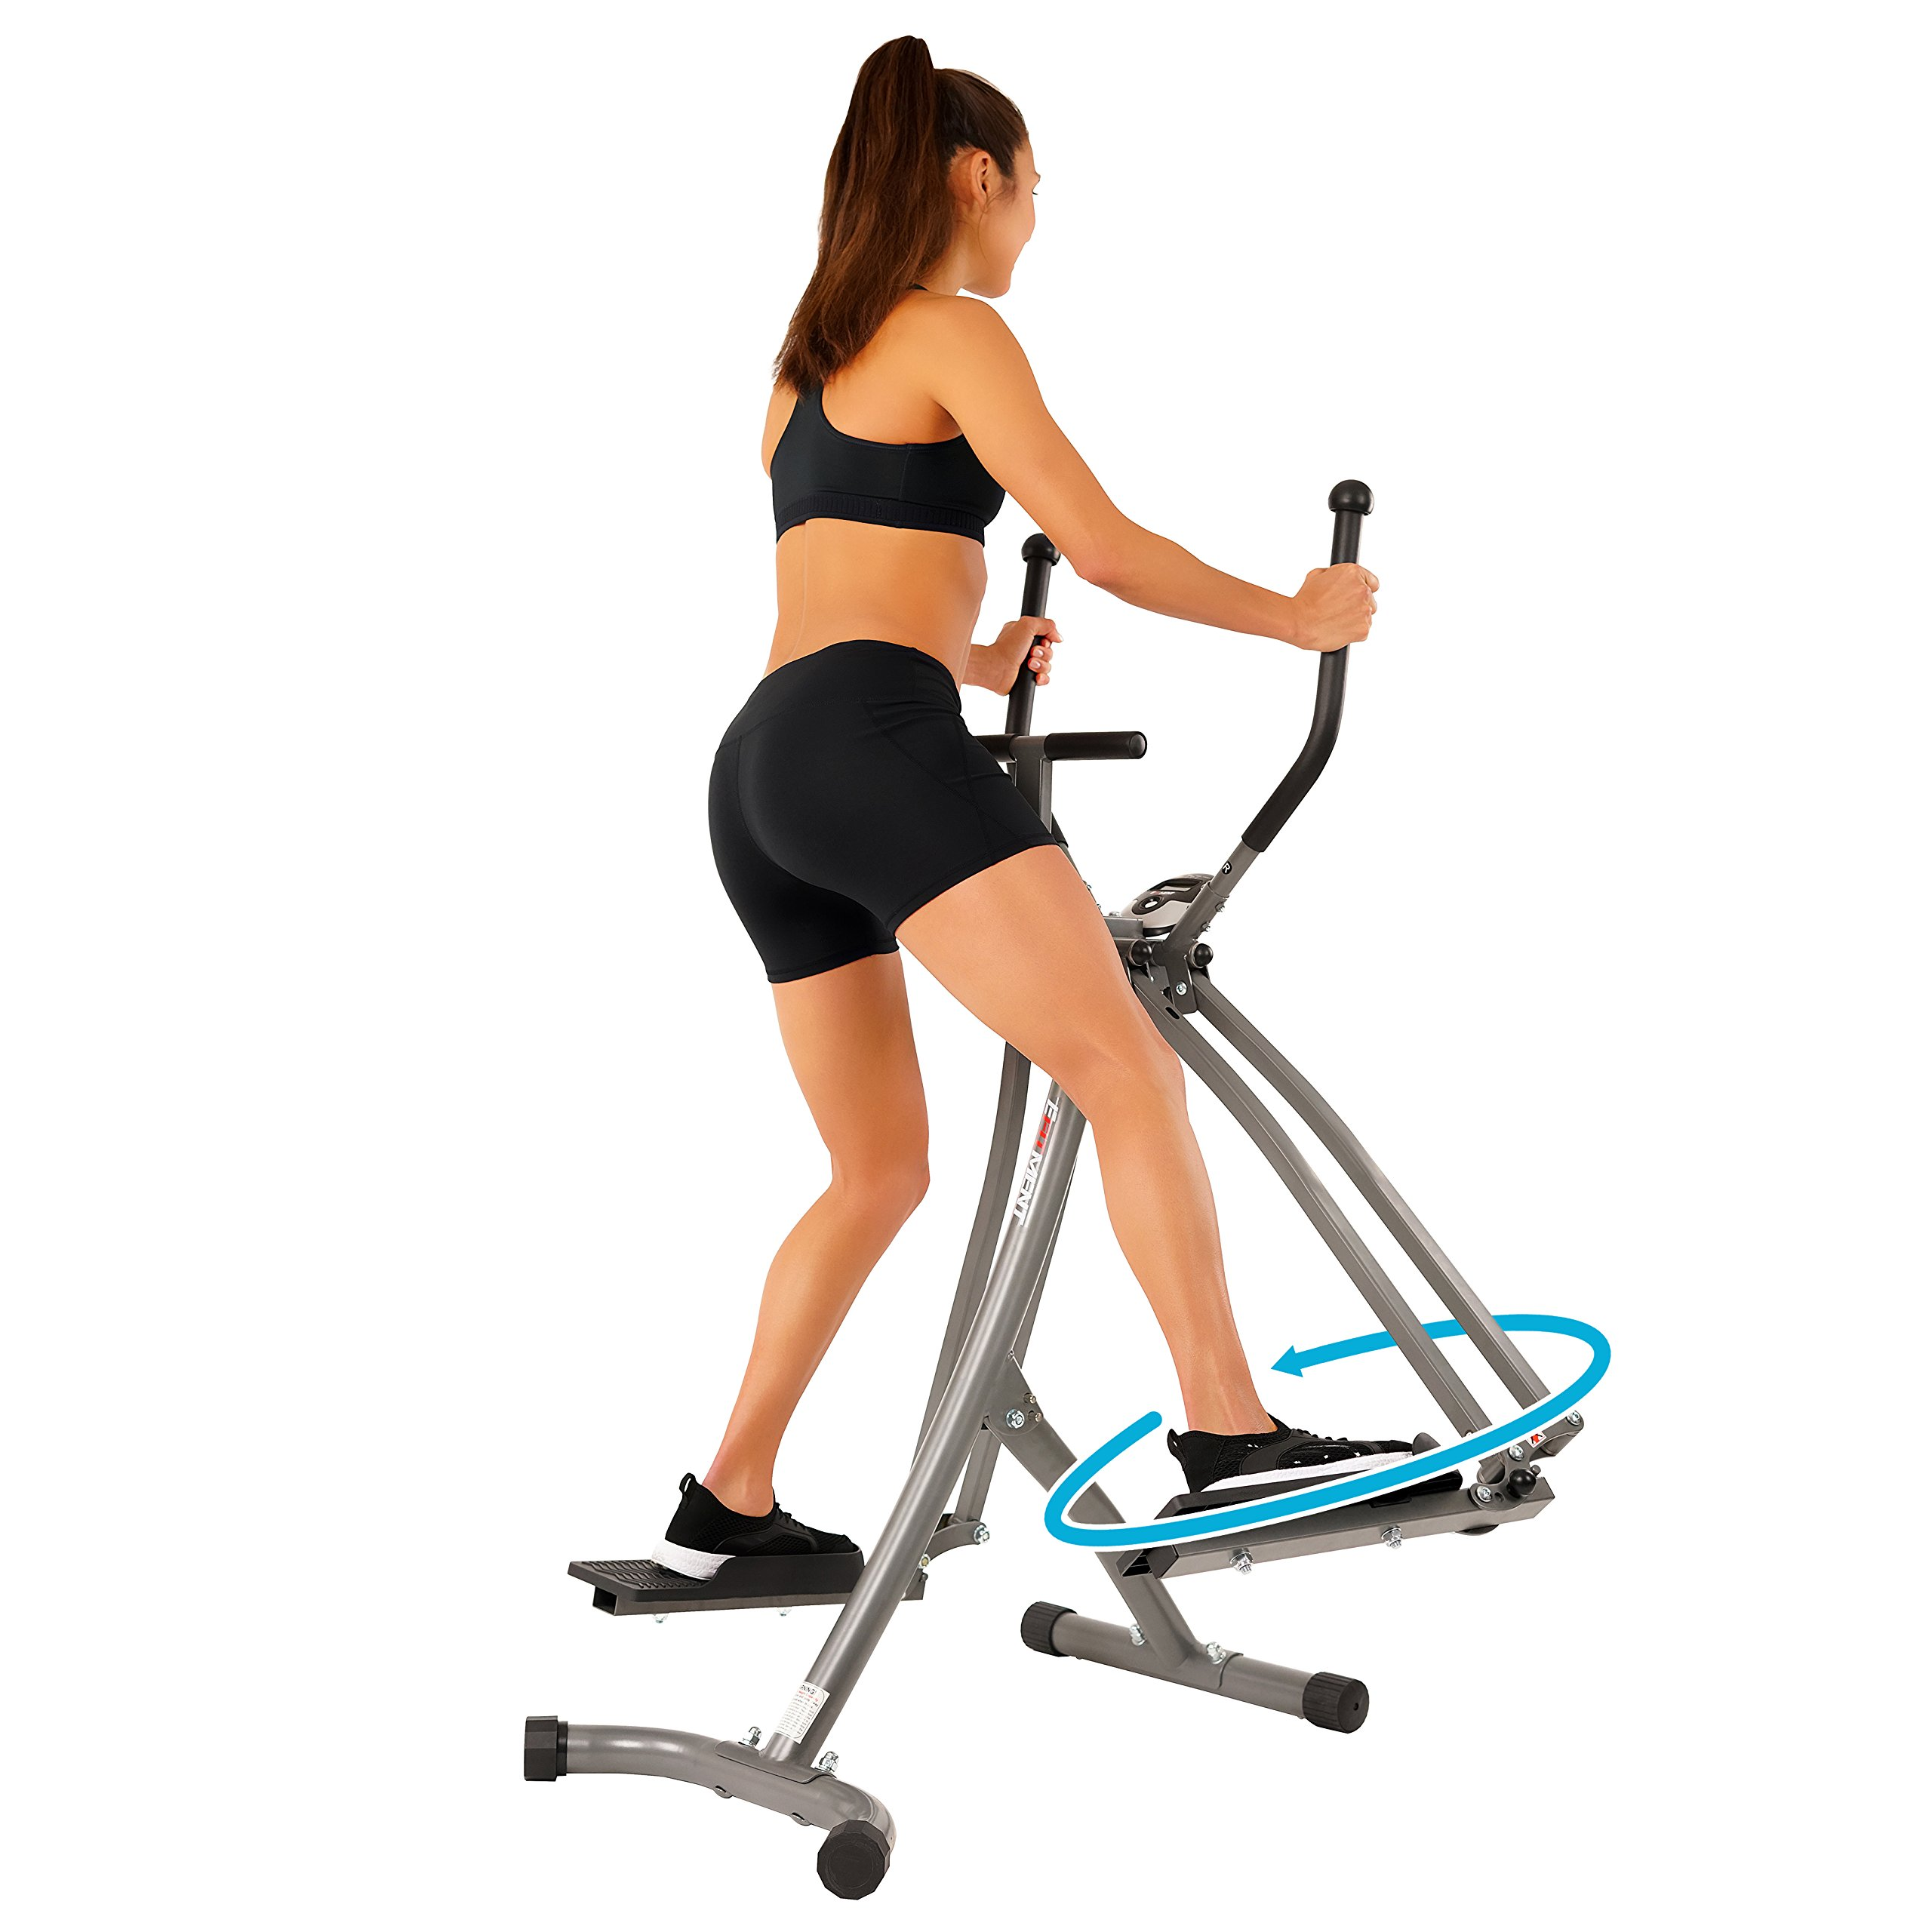 EFITMENT Air Walker Glider Elliptical Machine with Side Sway Action & 360 Motion for Exercise and Fitness - E020 by EFITMENT (Image #5)